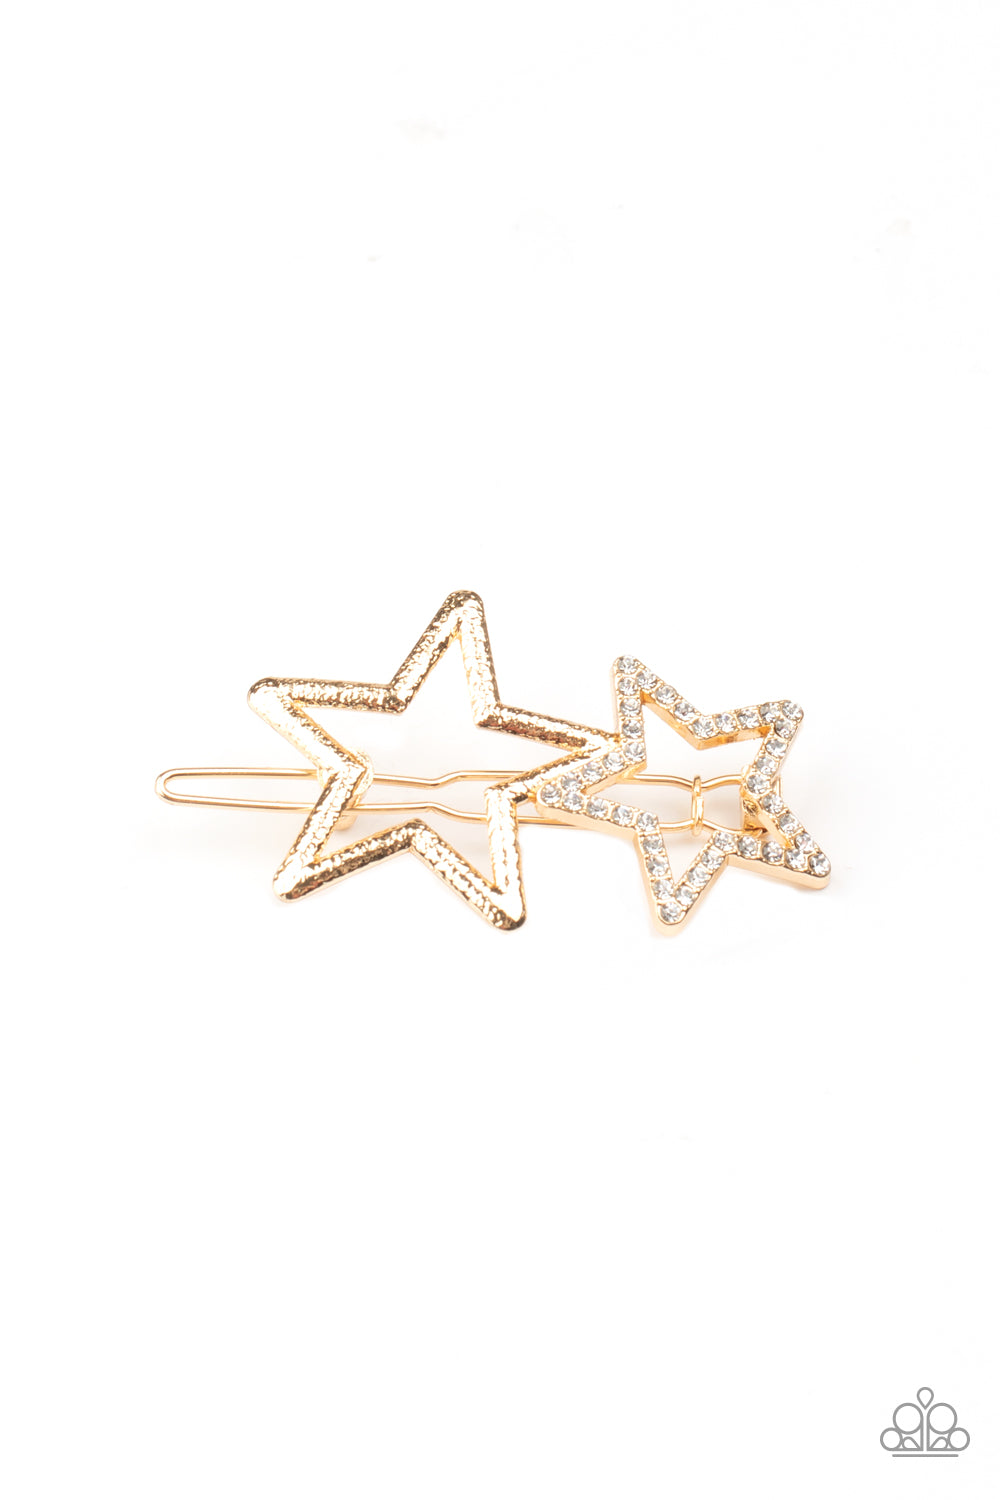 Paparazzi Accessories - Lets Get This Party STAR-ted! - Gold Hair Clip